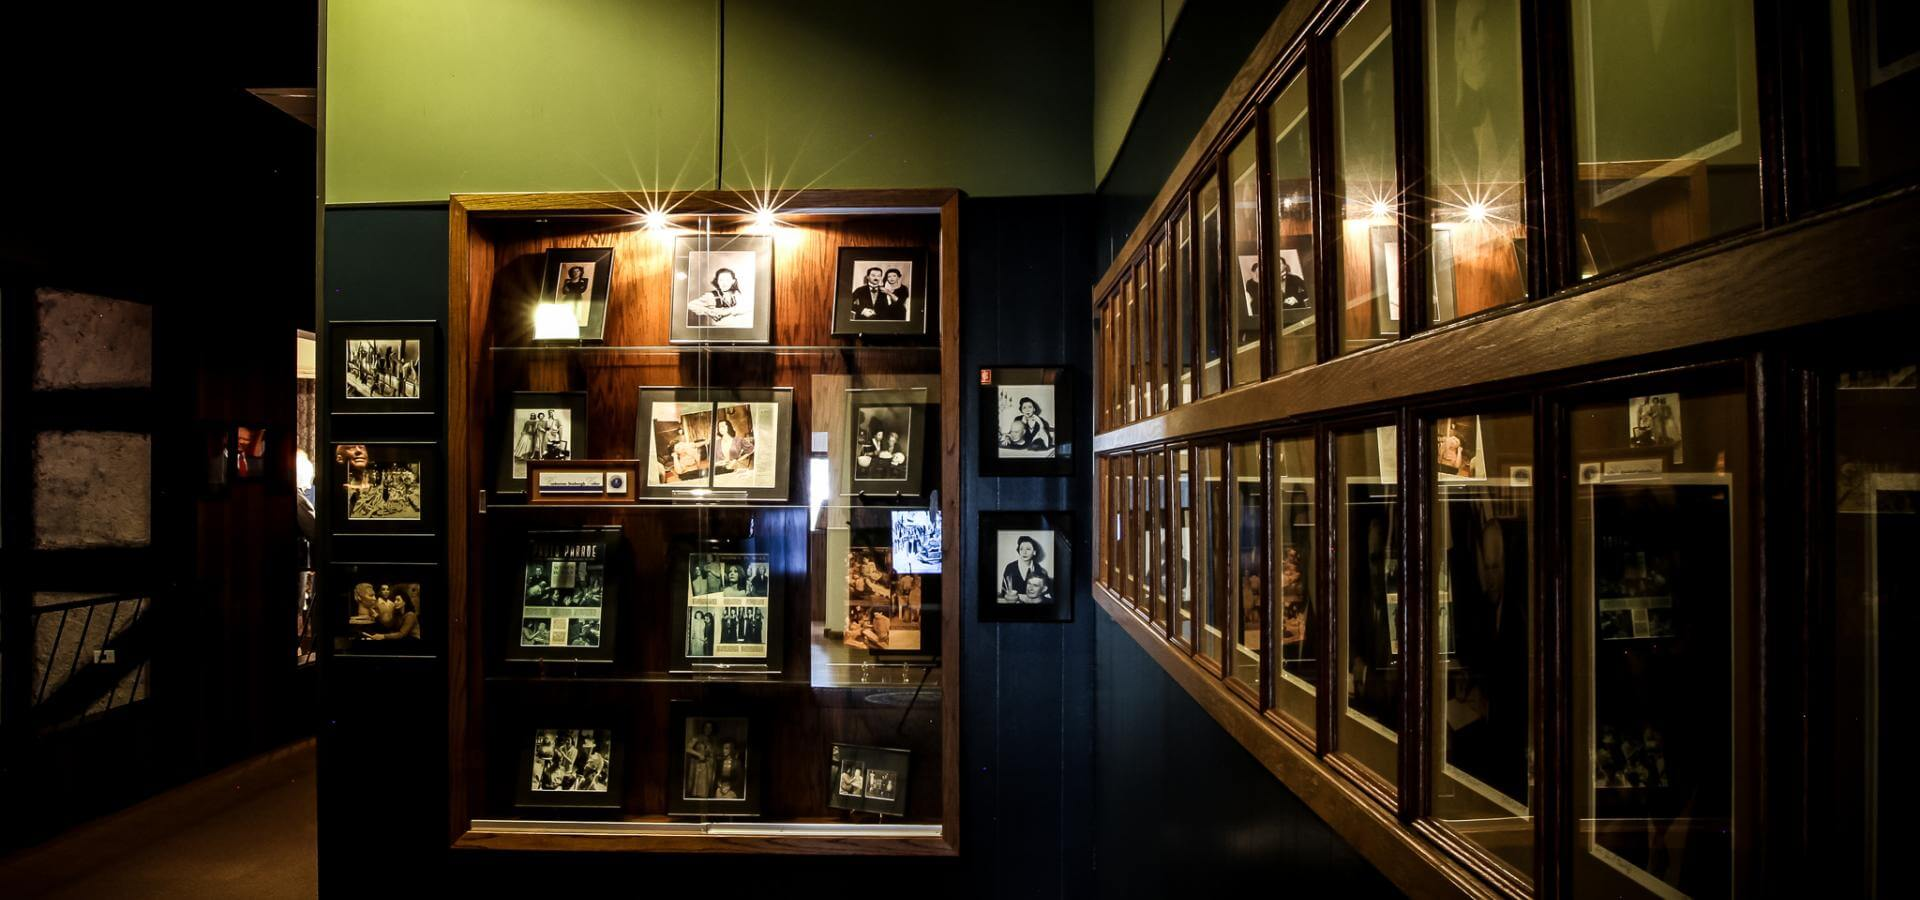 The photo gallery exhibit within The National Presidential Wax Museum depicting the lives of American Presidents as well as their families, pets and acquaintances.